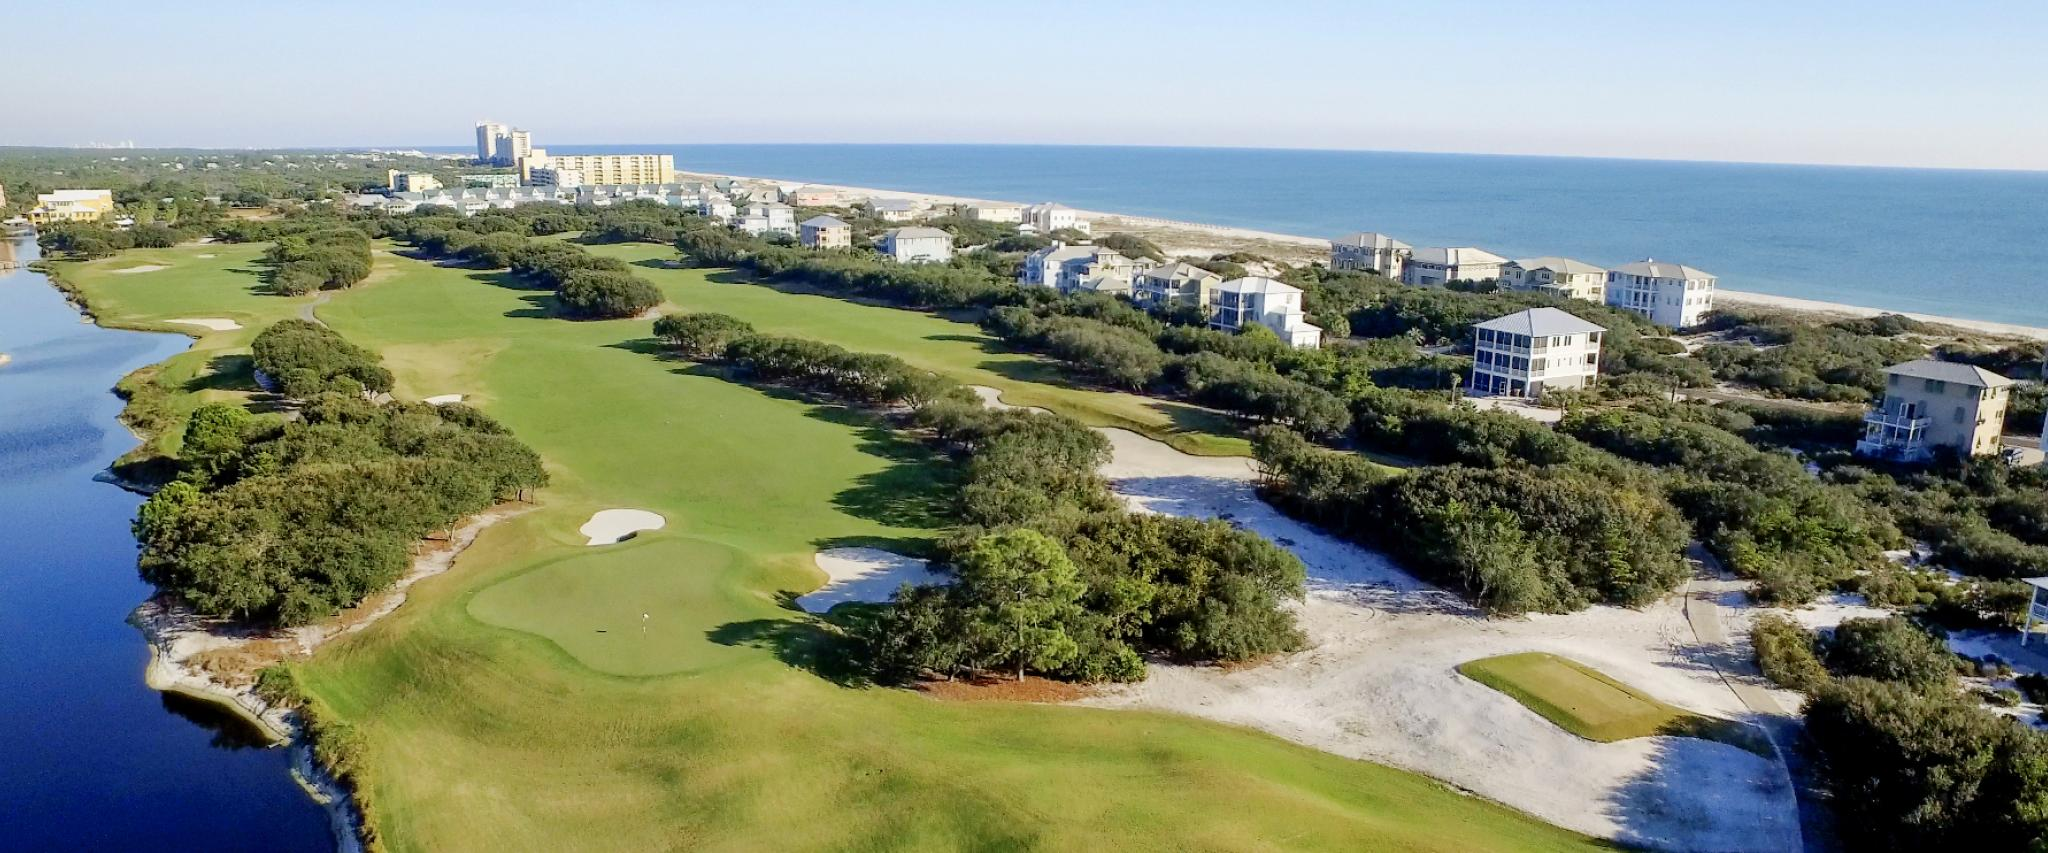 Kiva Dunes Golf Course in Gulf Shores